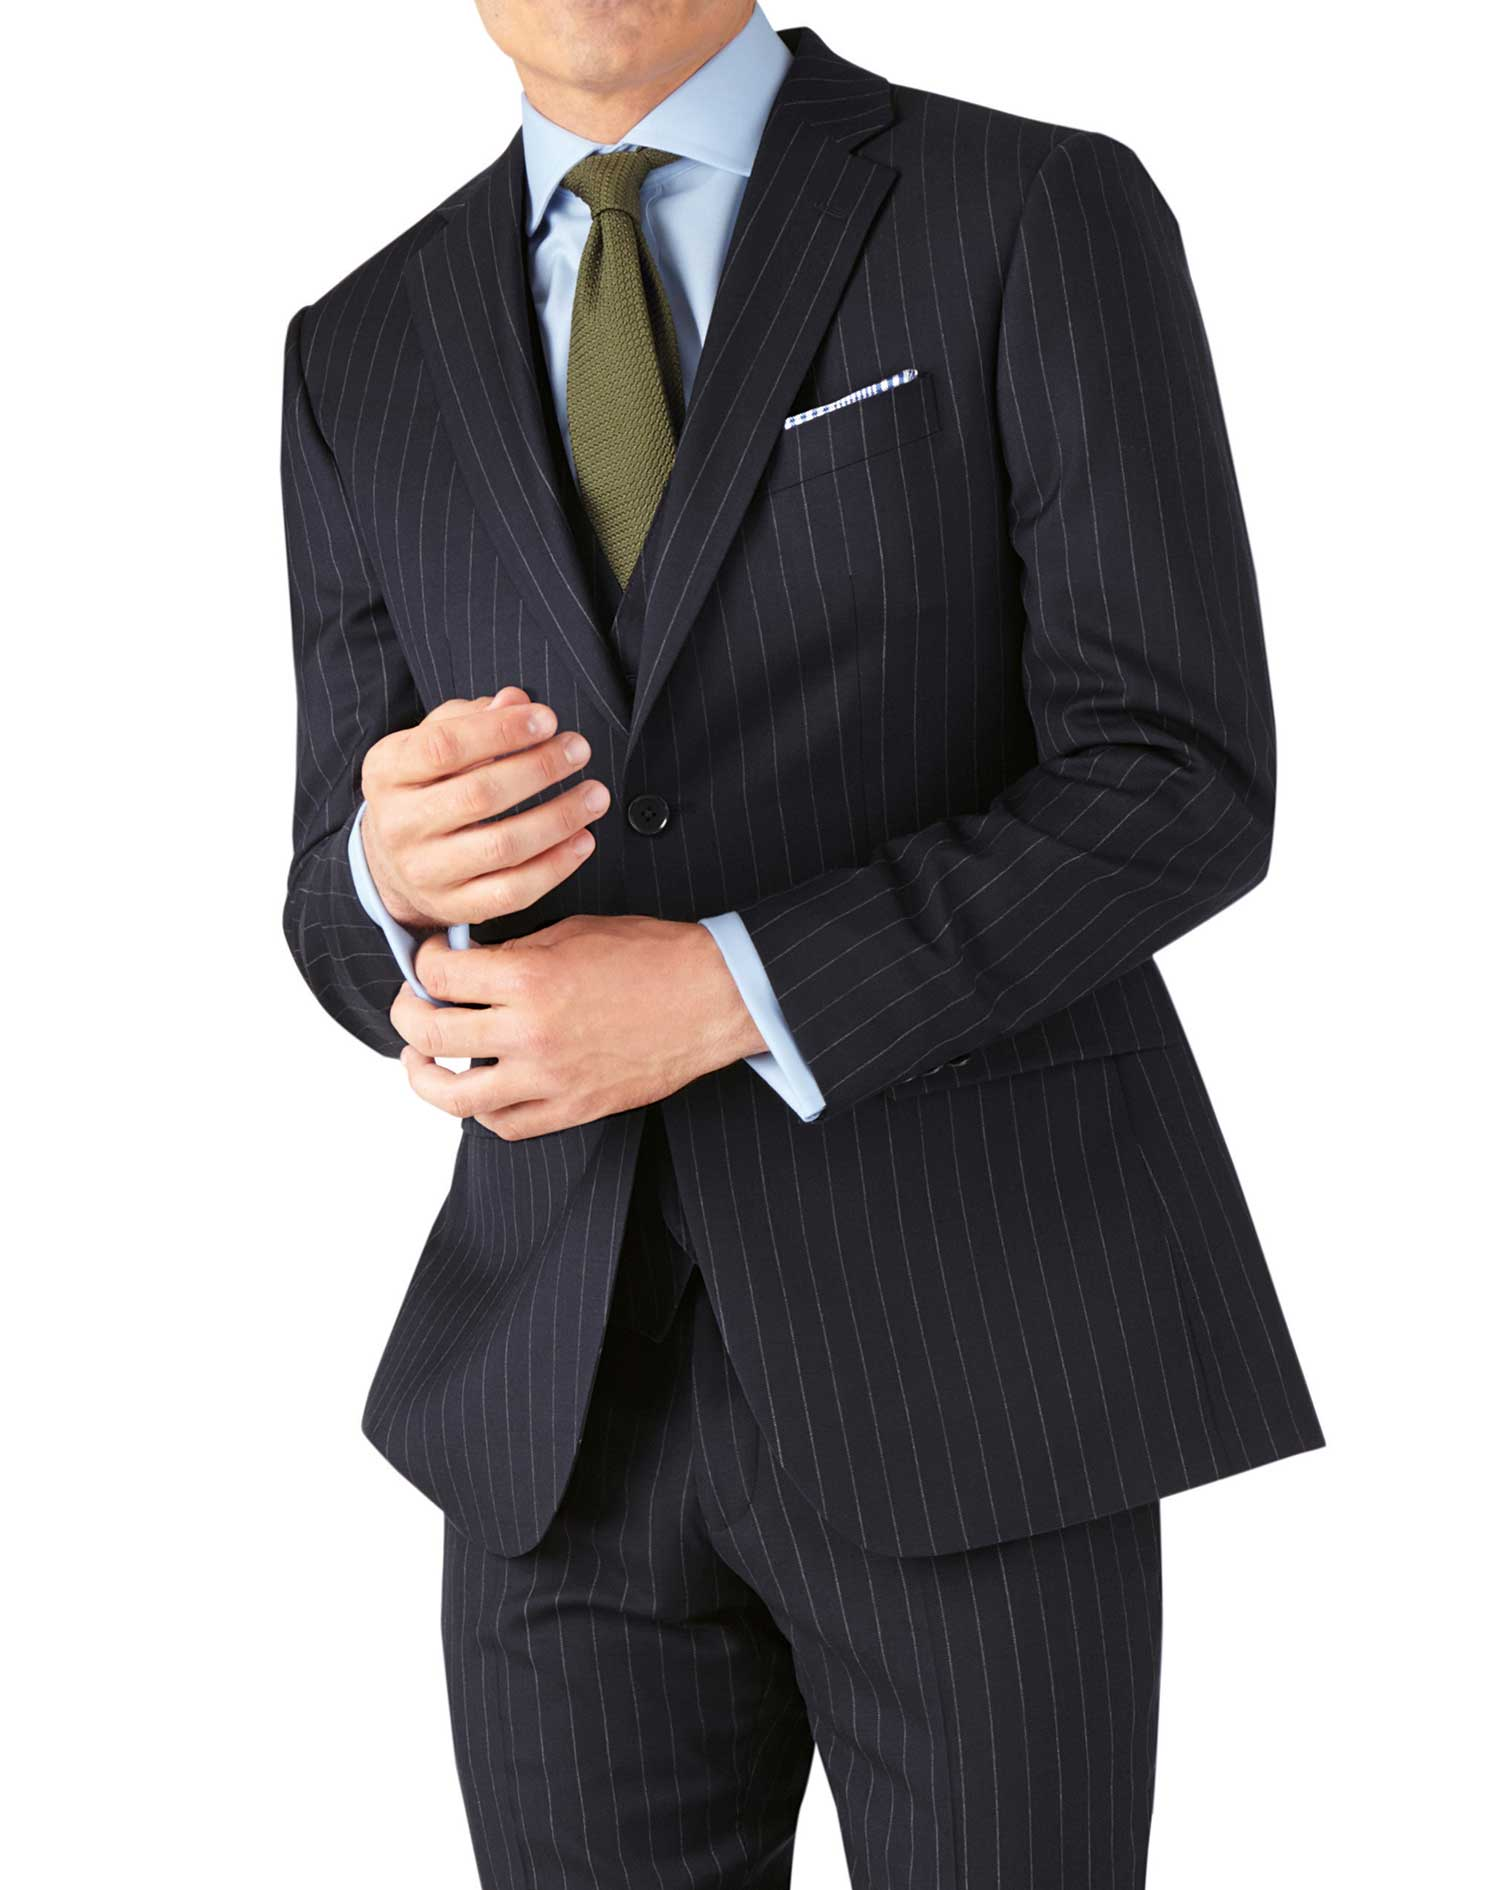 Navy Stripe Slim Fit Twill Business Suit Wool Jacket Size 44 Long by Charles Tyrwhitt